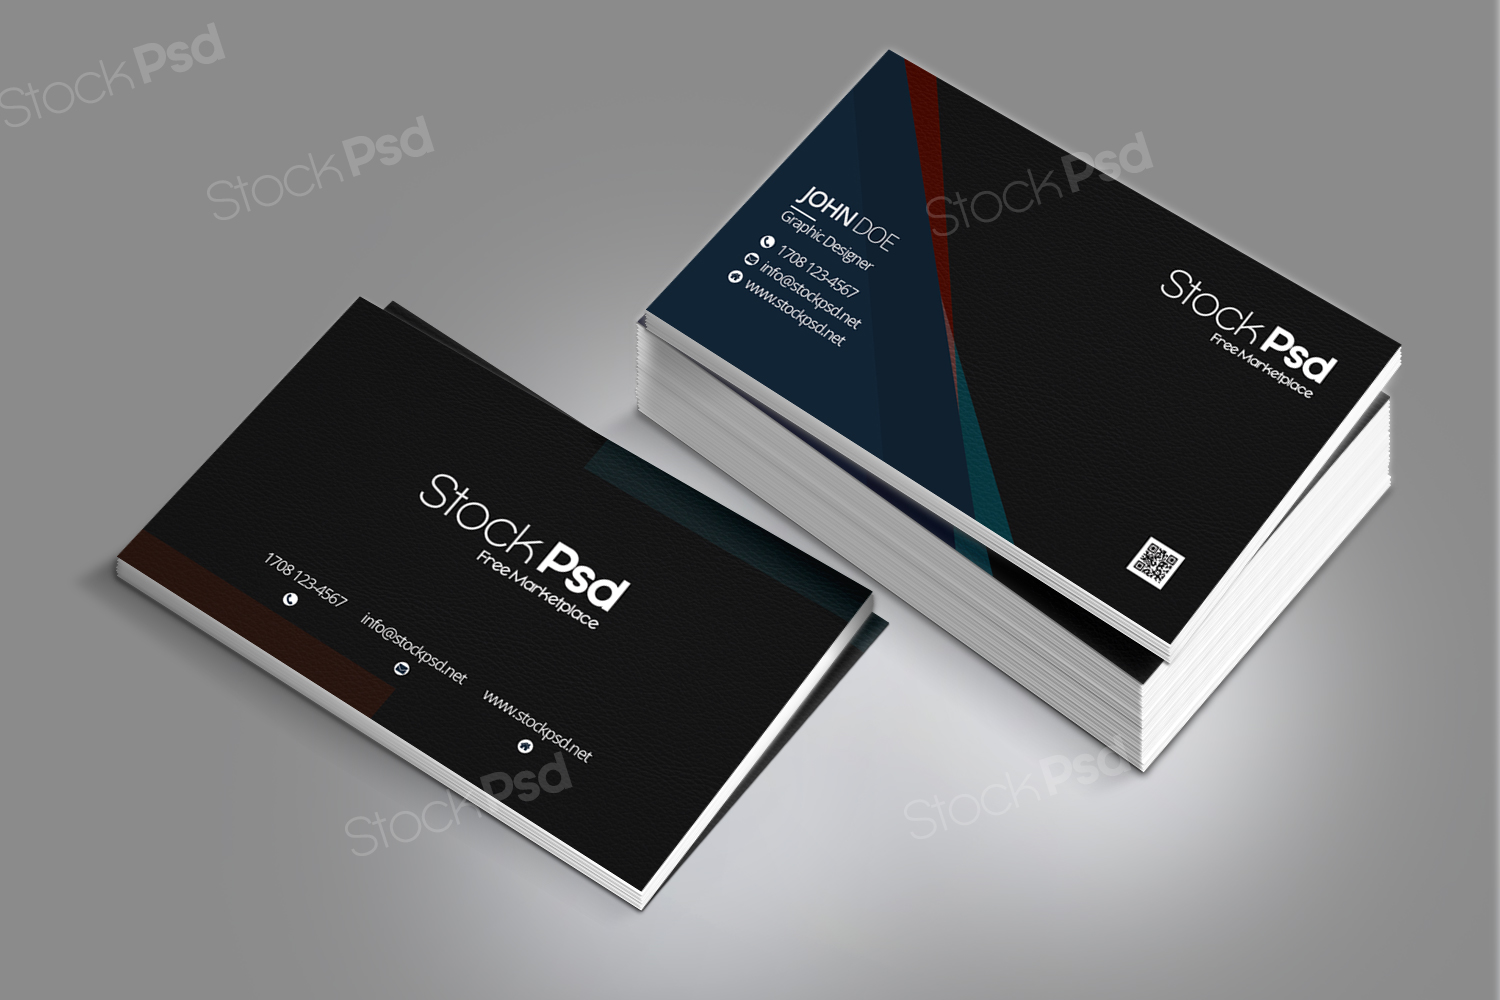 Stockpsd.net – Free PSD Flyers, Brochures and more | Business Card ...